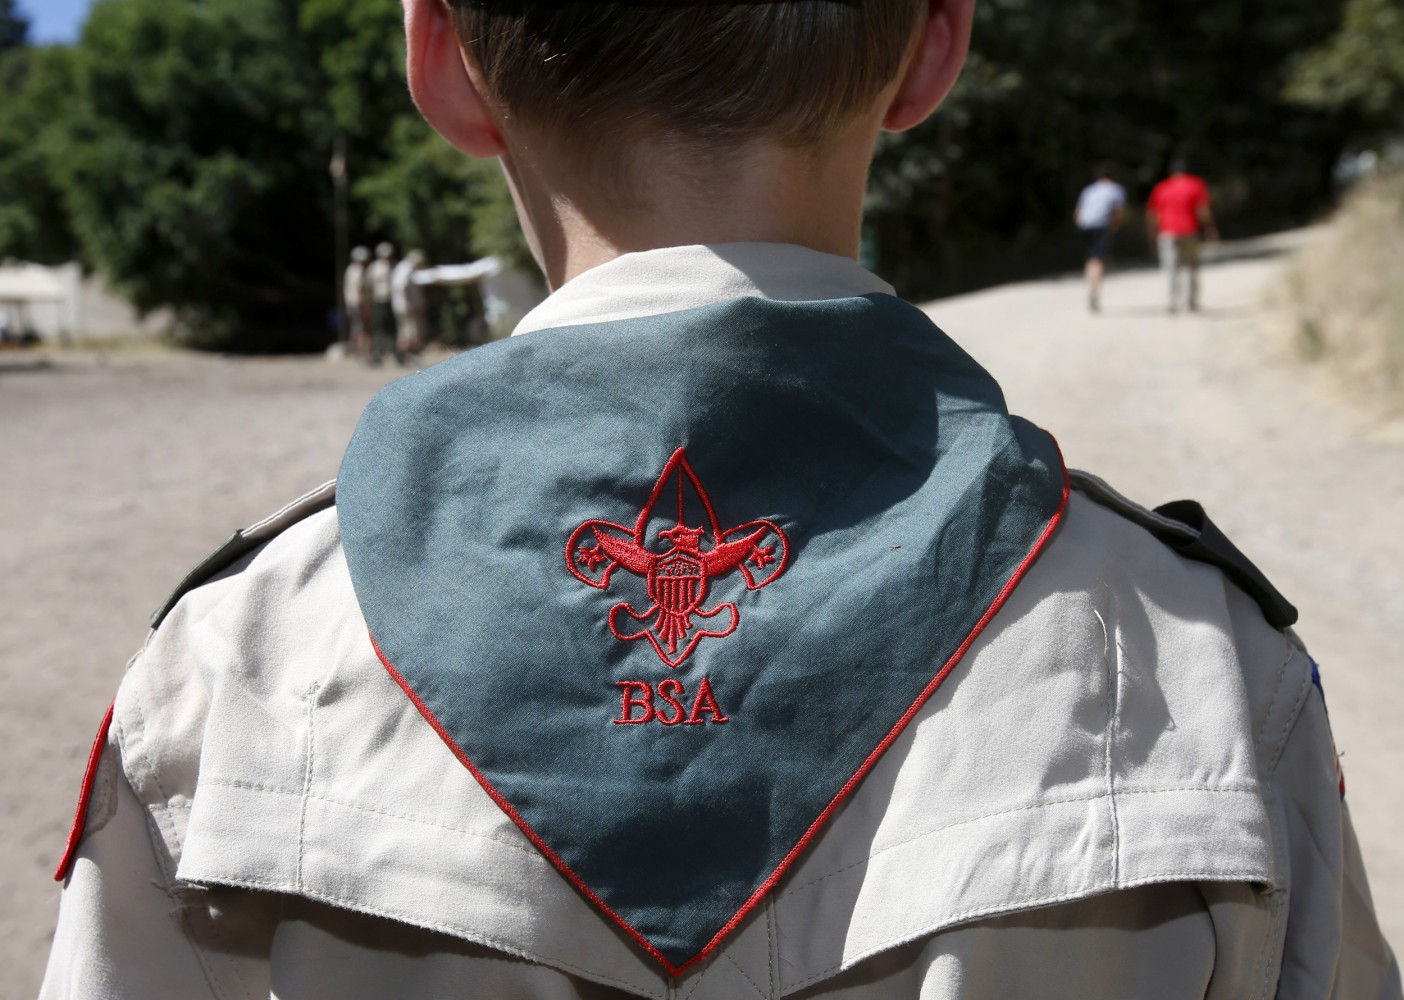 Mormon Church Drops Boy Scout Programs Over LGBT Inclusivity